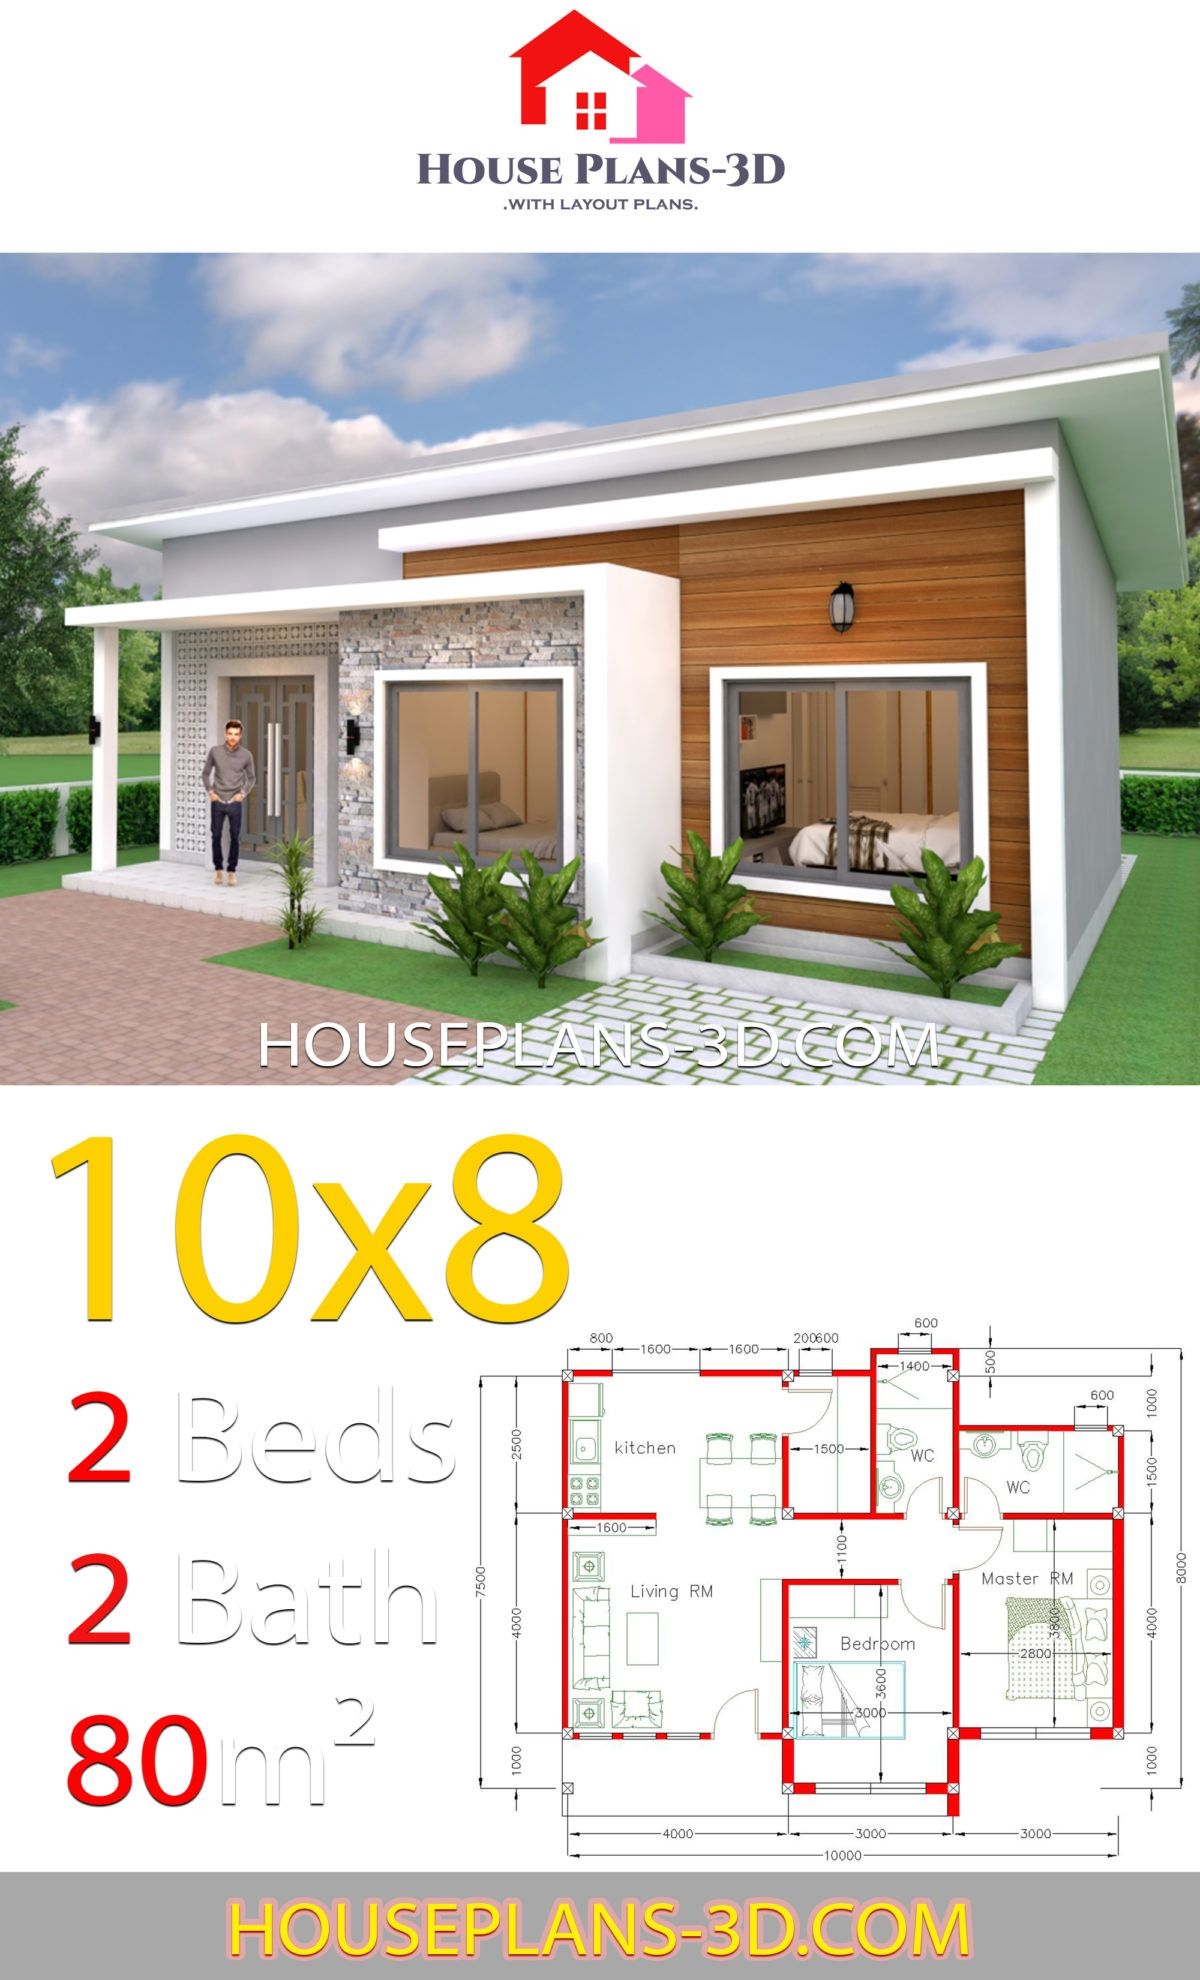 House Plans 10x8 With 2 Bedrooms Shed Roof House Plans 3d In 2020 House Plans House Roof Small House Design Plans